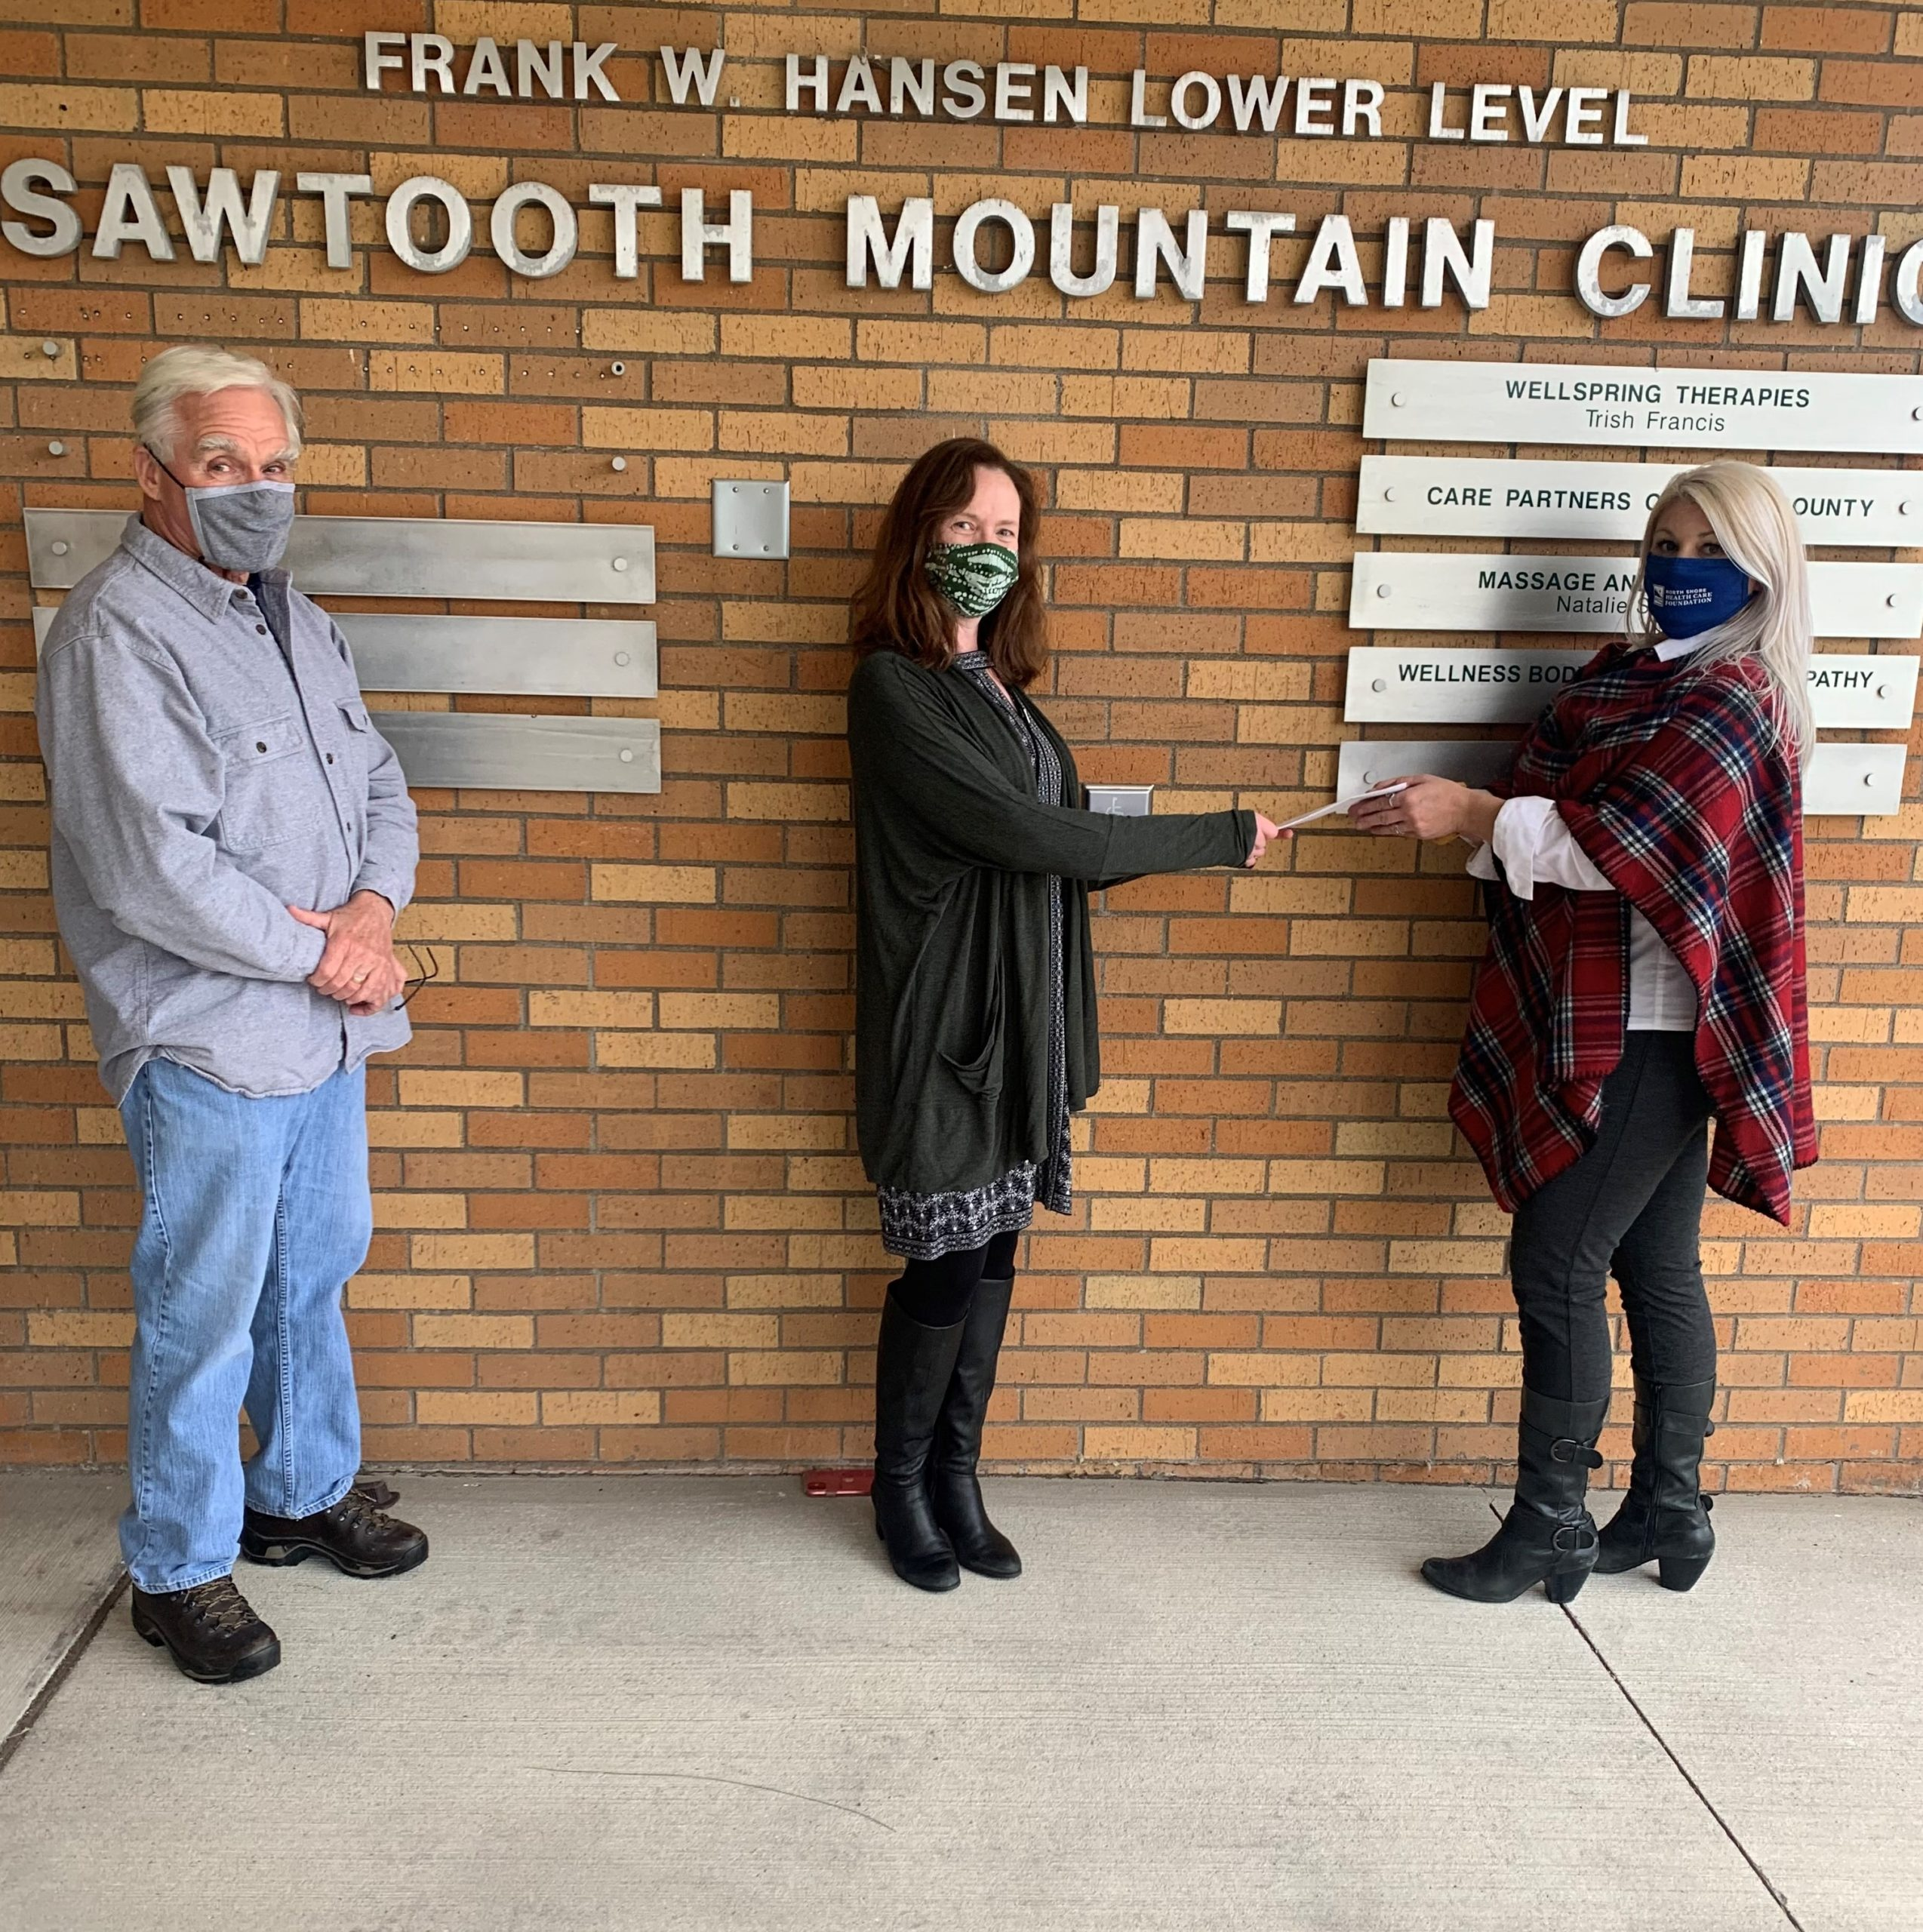 Transition of Oral Health Task Force to Sawtooth Mountain Clinic Ensures Sustainability